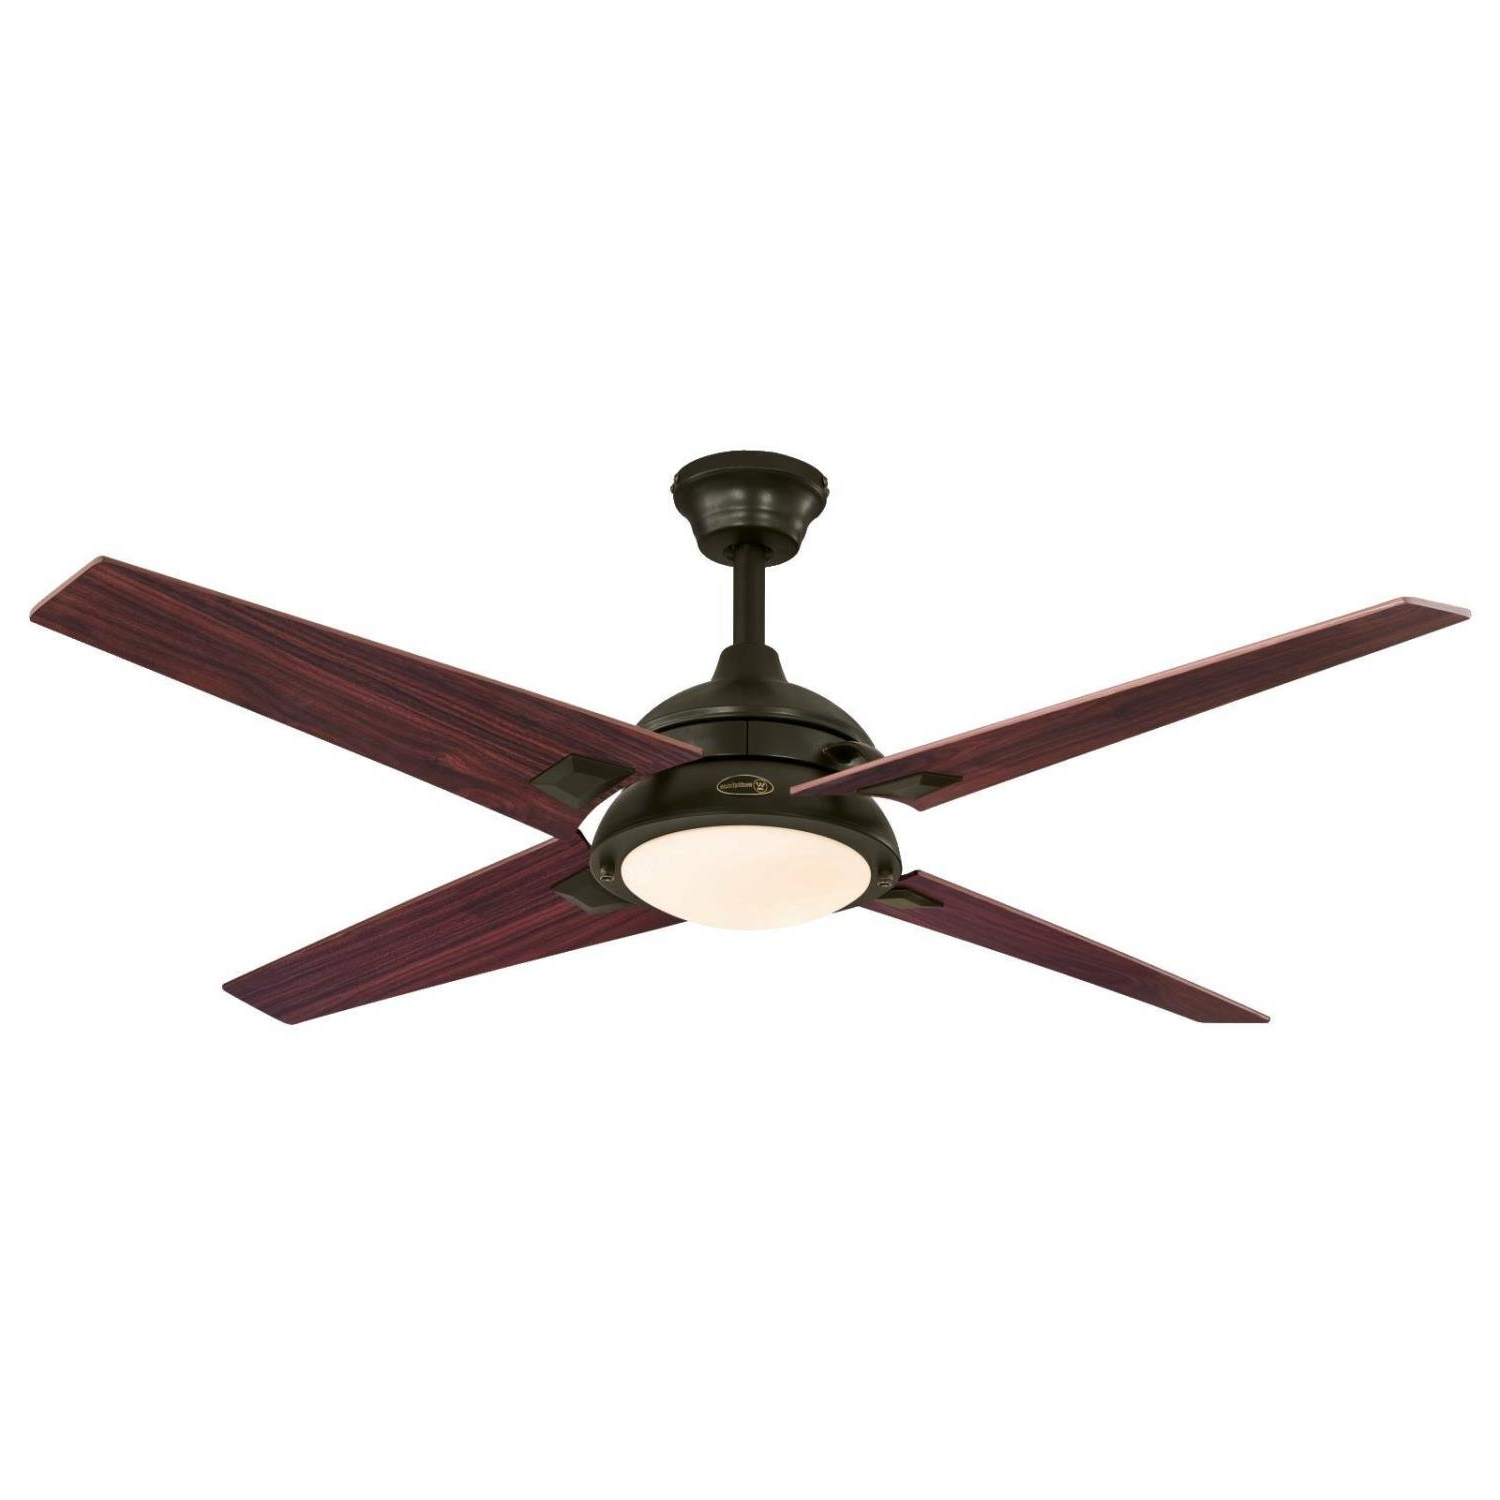 "52"" Lovetts 4 Blade Ceiling Fan Intended For Well Known Hemsworth 4 Blade Ceiling Fans (View 4 of 20)"